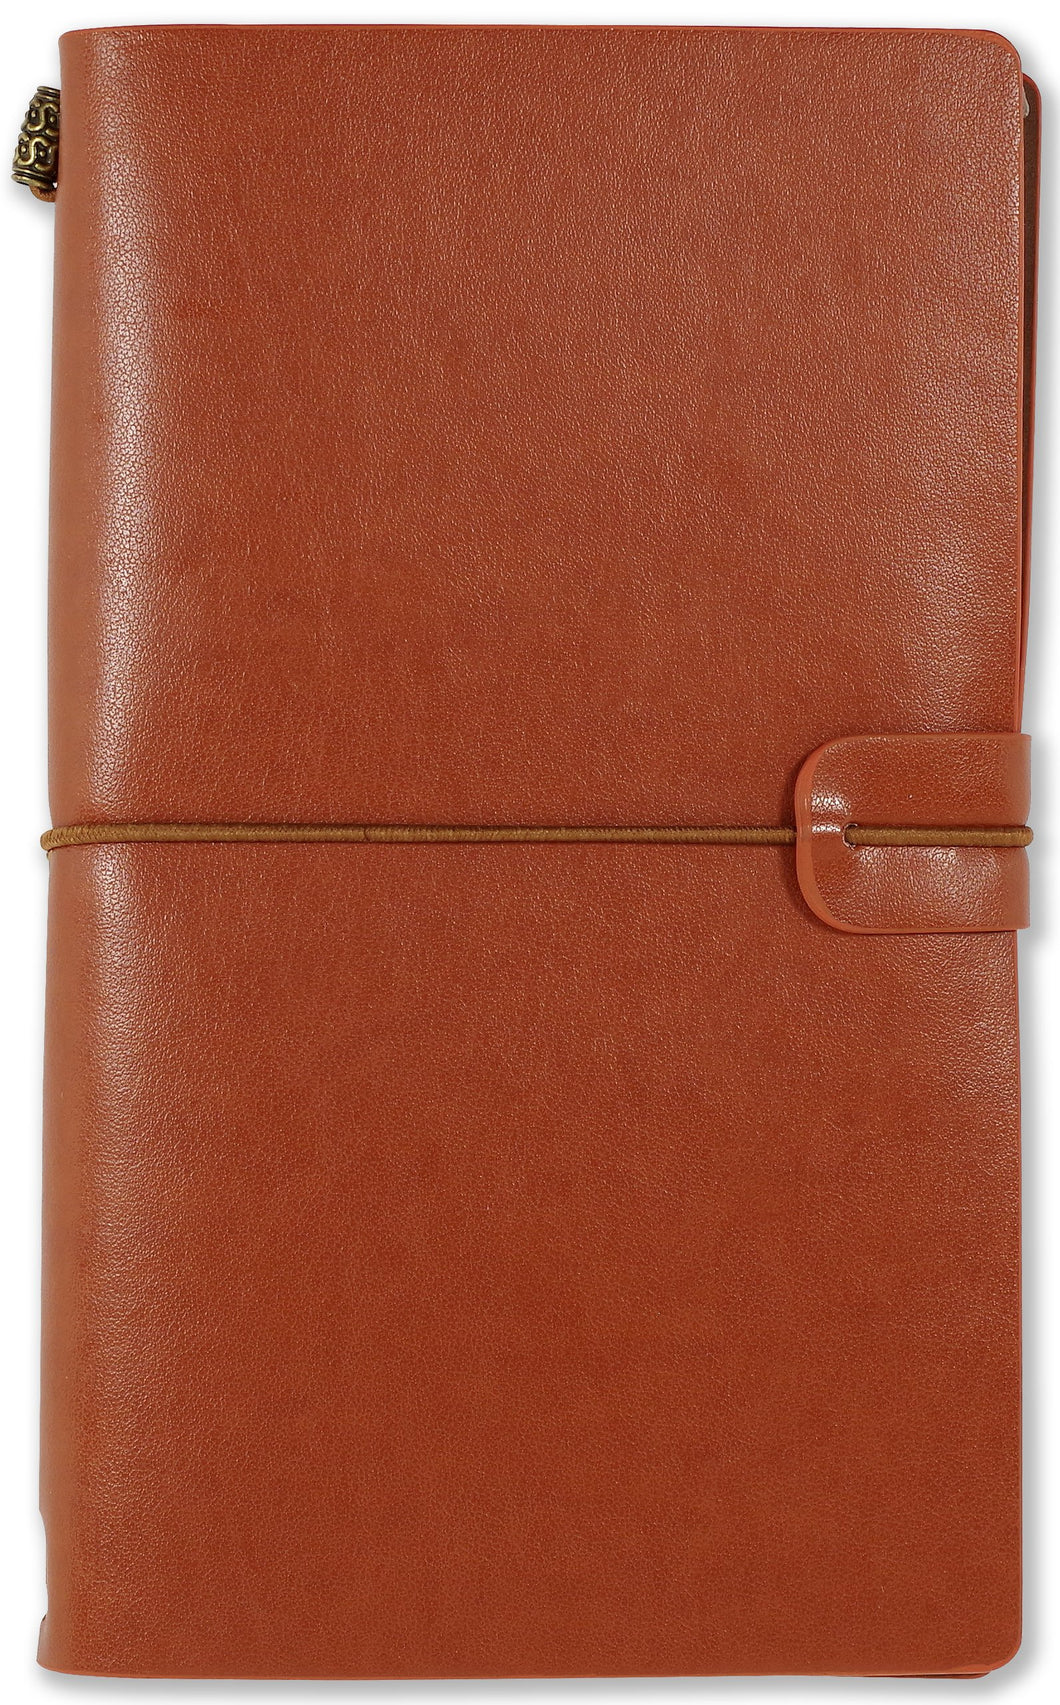 Voyager Notebook (Tan)